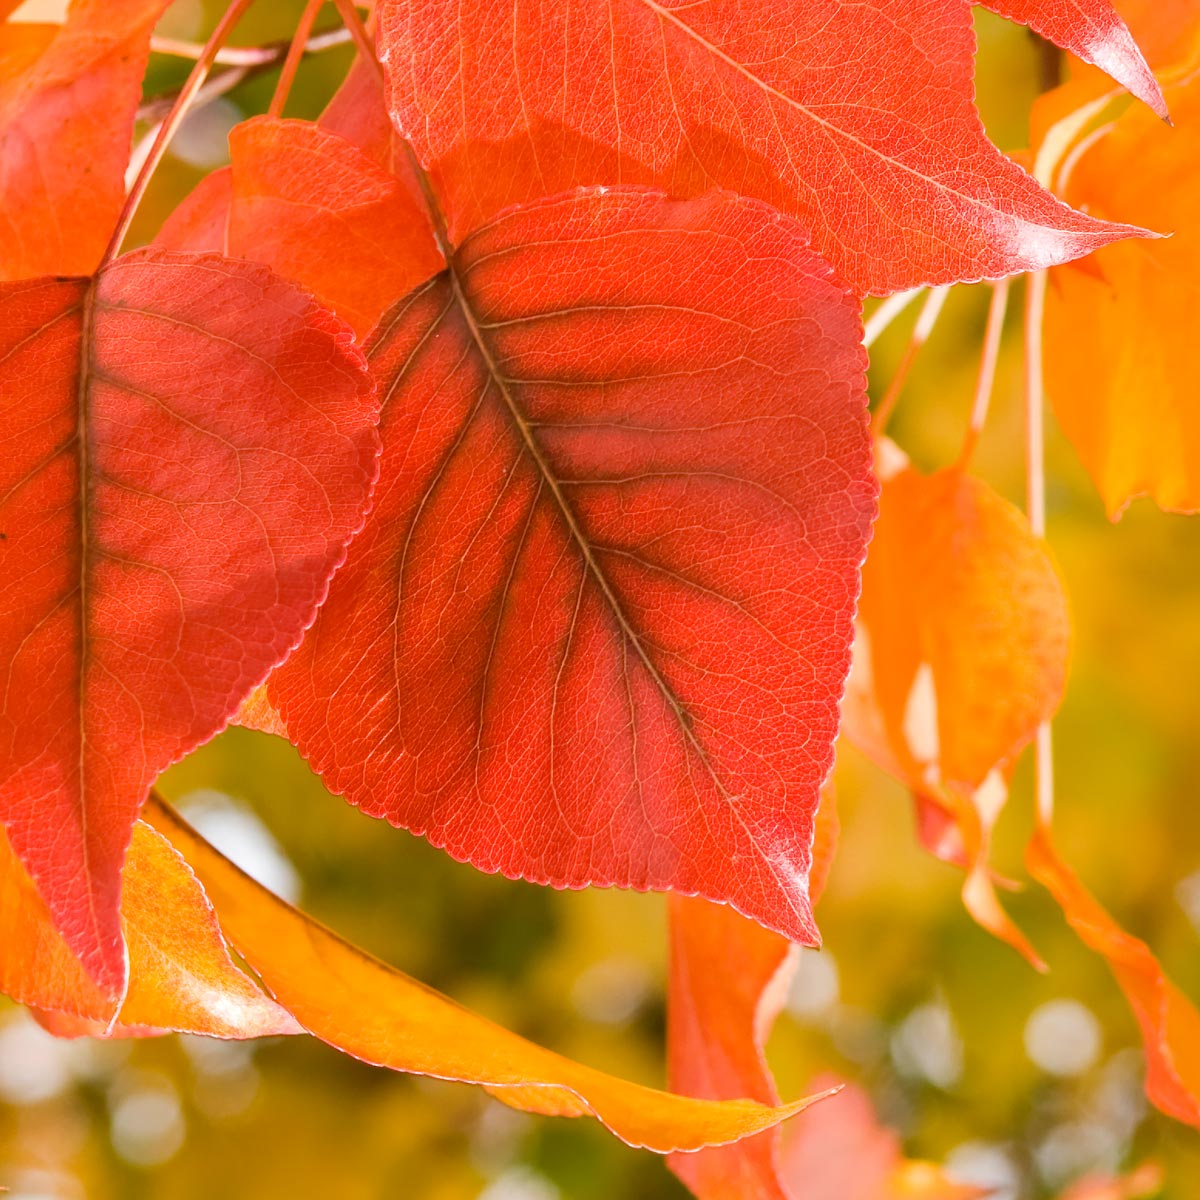 Color the leaves to understand the shades of fall